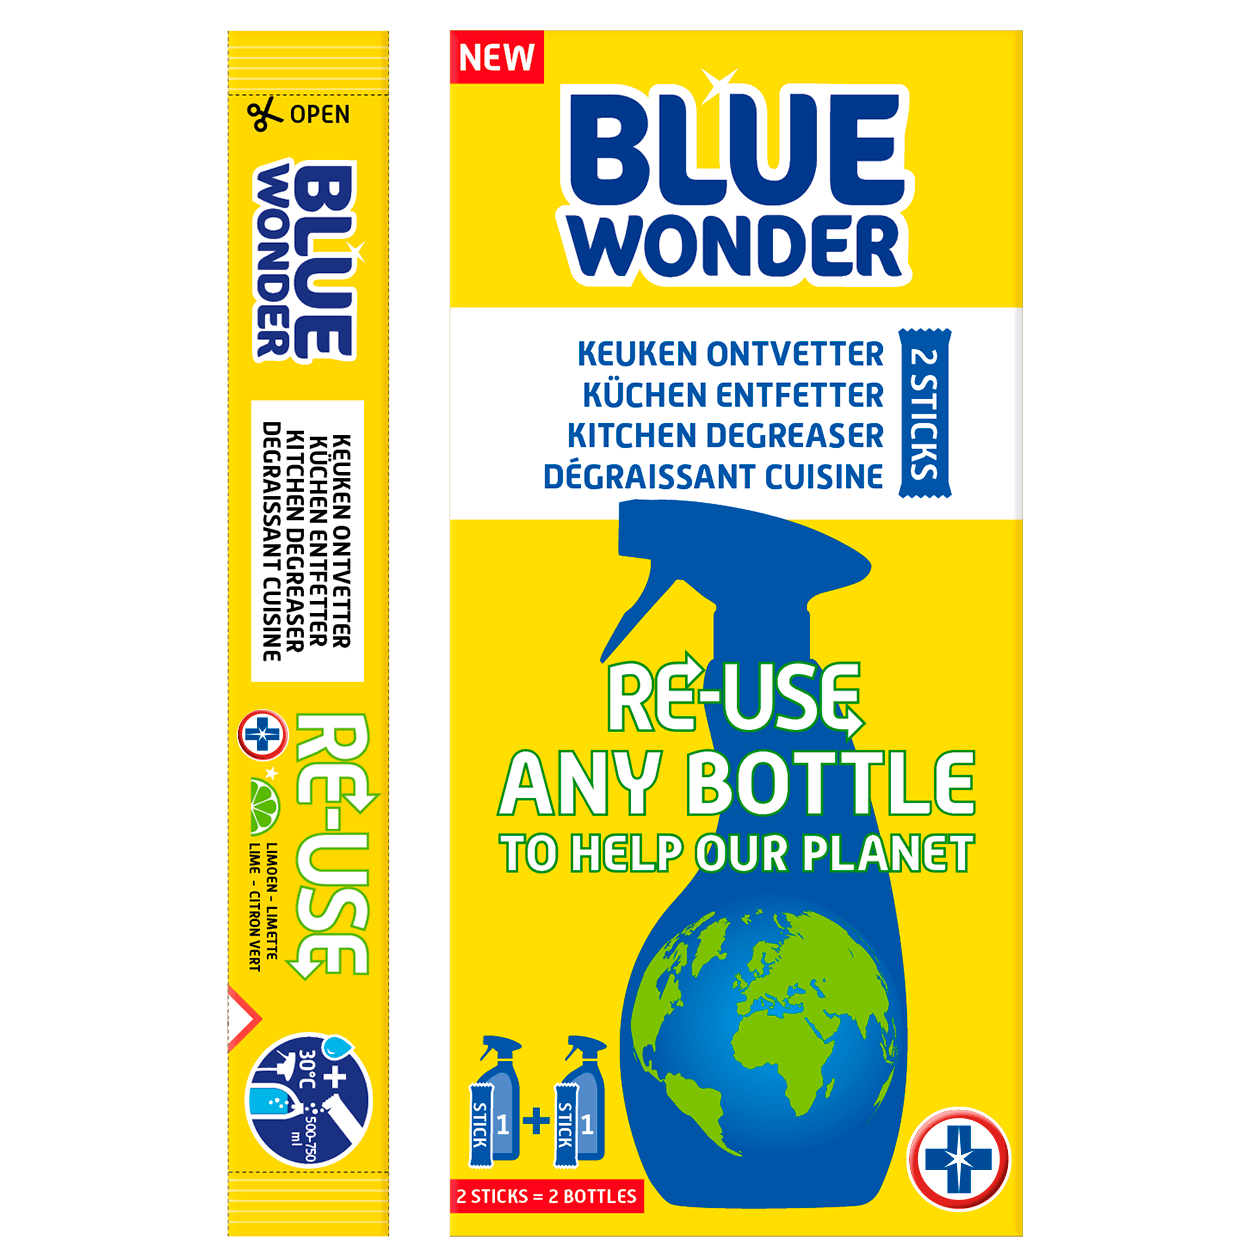 This box Blue Wonder contains 2 very powerful sticks. The contents of 1 stick easily dissolves in a bottle with 500-750 ml warm water, transforming into a strong MULTI-HYGIENIC CLEANER, LIMESCALE CLEANER OR KITCHEN DEGREASER. Reusing your plastic bottles will help our planet stay blue – patent pending. 100% vegan!  PREPARE CLEANER IN 3 STEPS RE-USE: Take a used bottle. Rinse the bottle & sprayer with water. Fill the bottle with 500-750 ml warm water (30° Celsius). FILL: Pour the contents of 1 stick in the bottle with warm water, attach the sprayer and wait 1-3 minutes. Wash your hands well afterwards. SHAKE: Shake the bottle a little and your KITCHEN DEGREASER is ready for use!